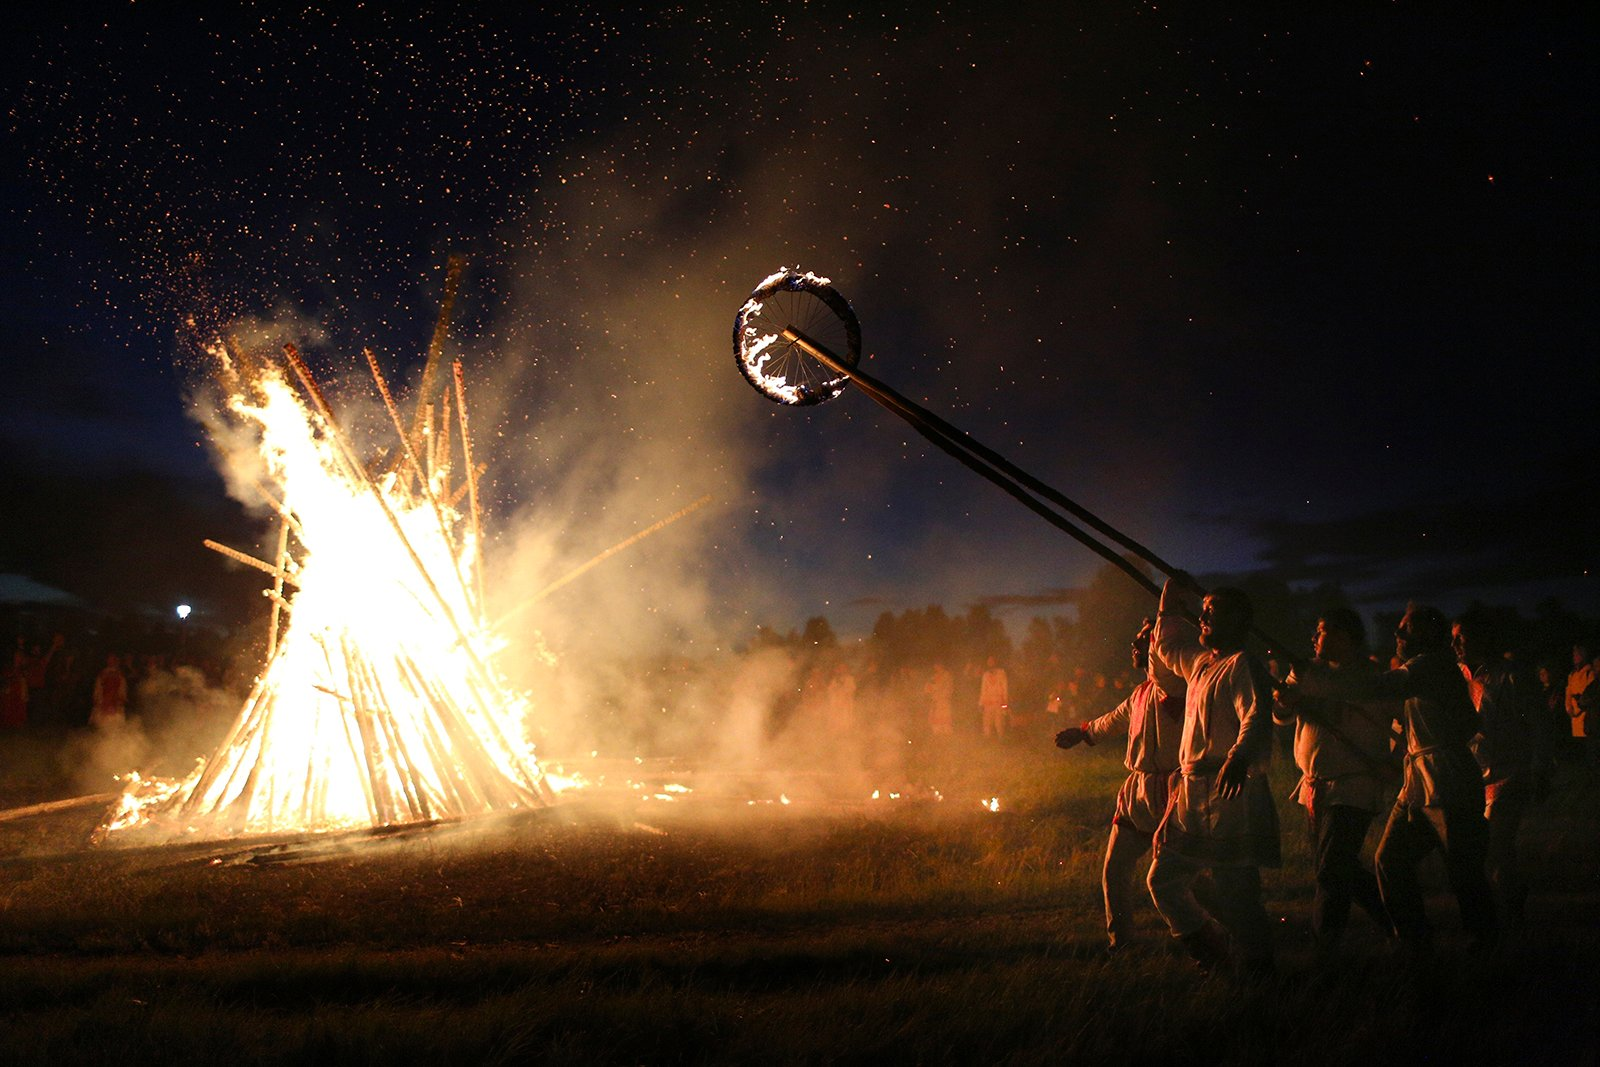 People walk around a bonfire celebrating the summer solstice in Okunevo village, northeast of the Siberian city of Omsk, Russia, Monday, June 21, 2021. The festivities of Ivan Kupala, or John the Baptist, are similar to Mardi Gras and reflect pre-Christian Slavic traditions and practices. (AP Photo/Evgeniy Sofiychuk)